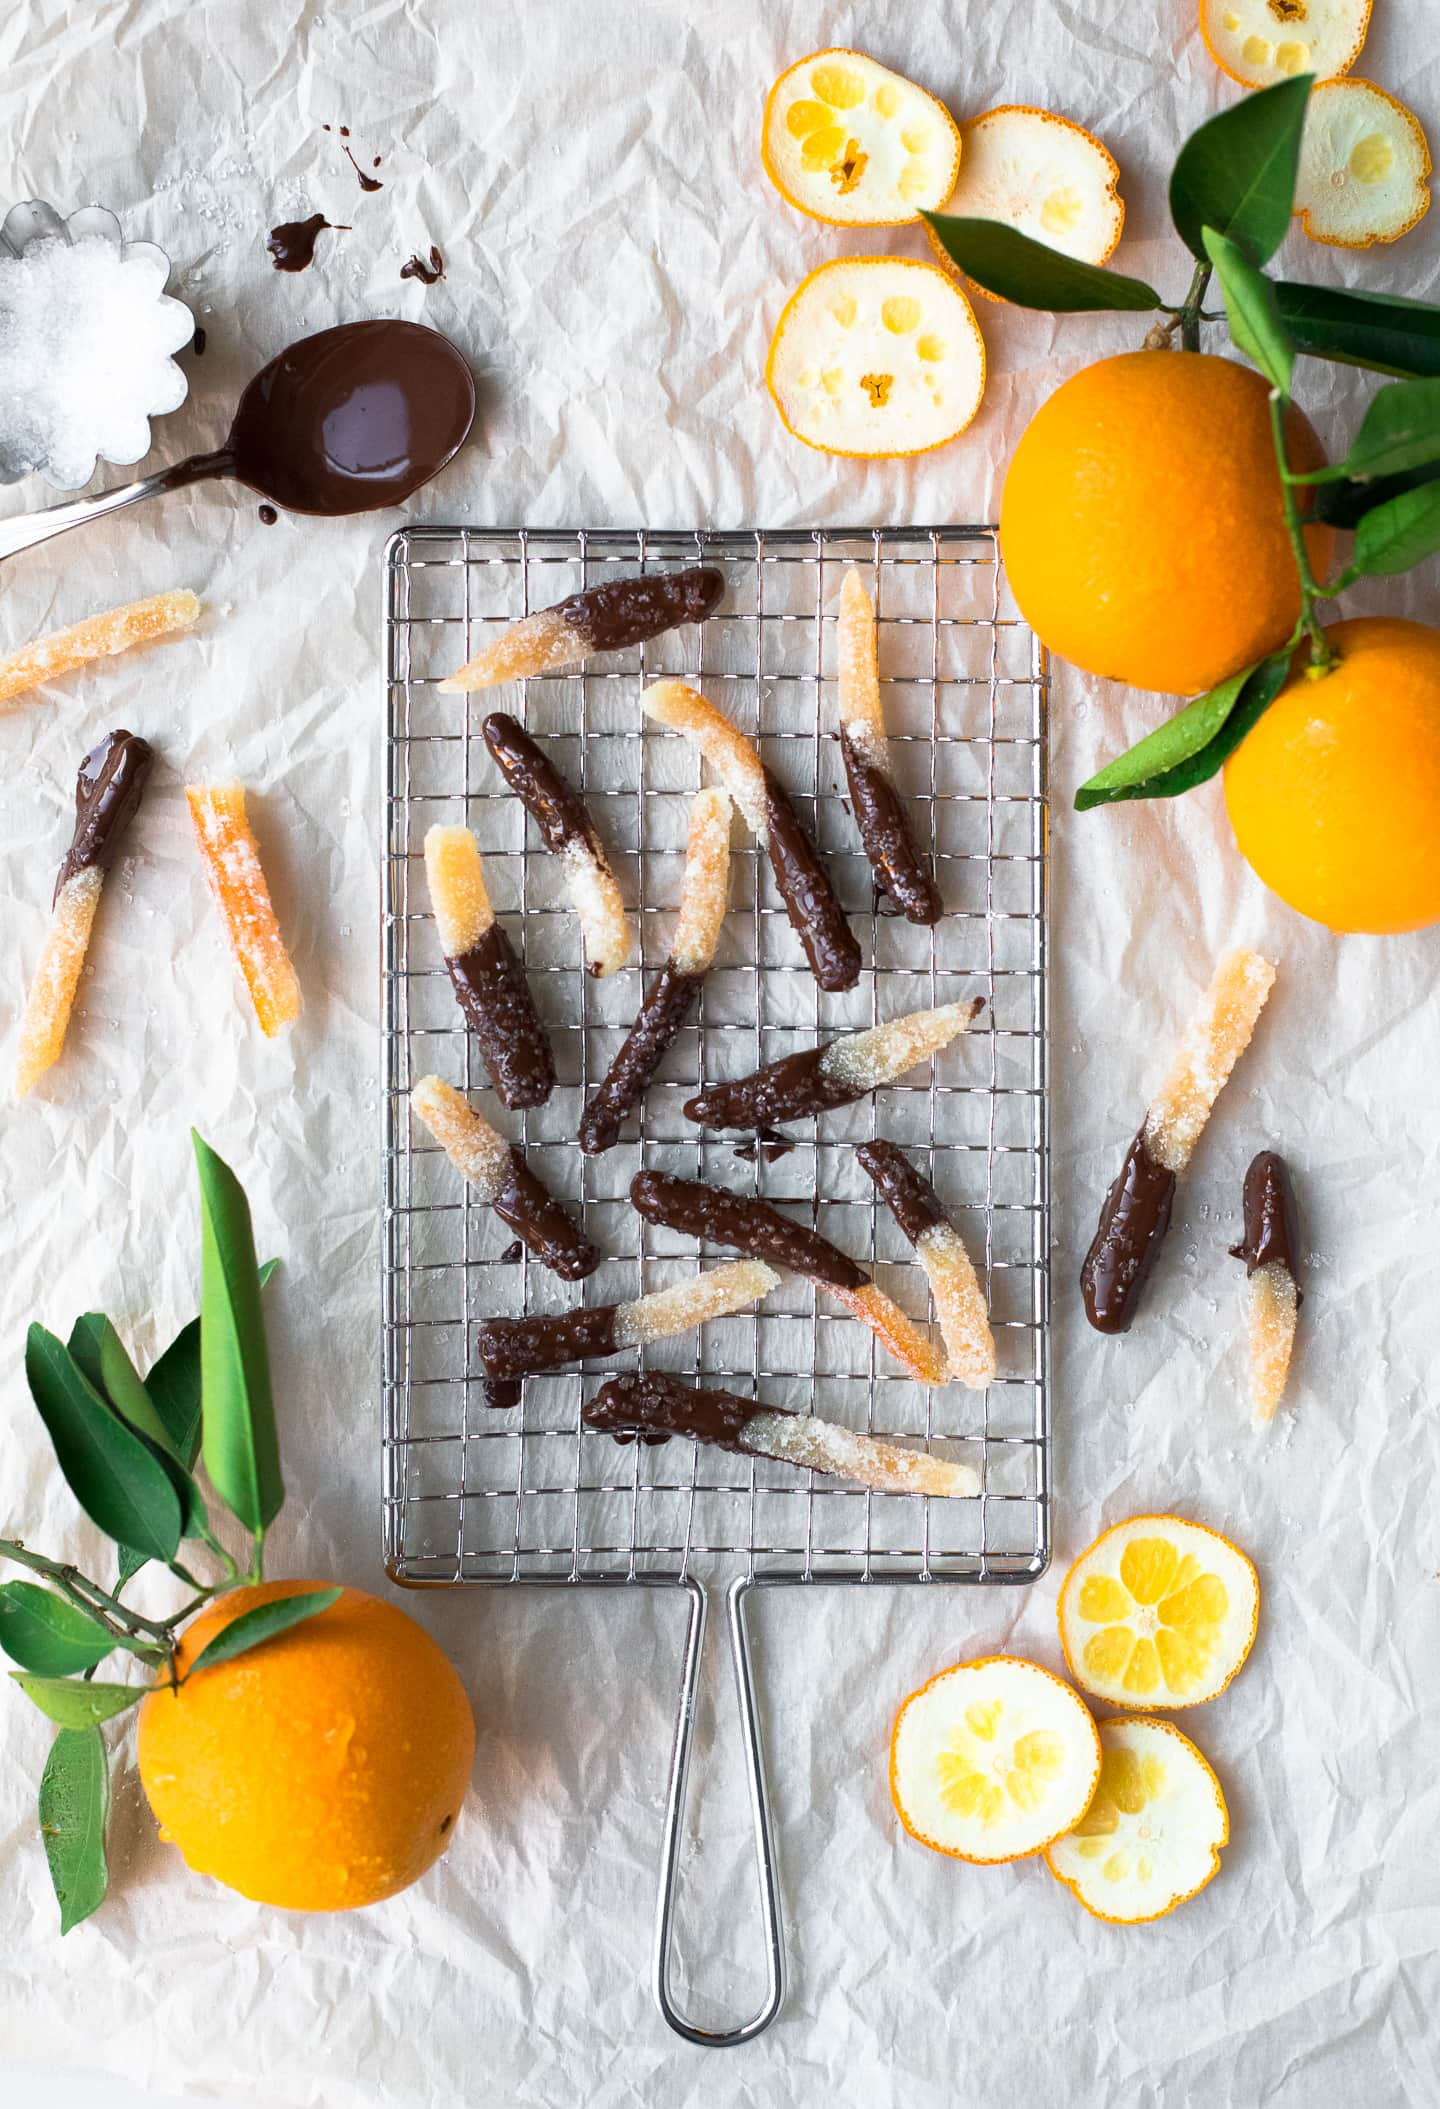 Overhead view of strips of chocolate-dipped candied orange peel on a safety grater, surrounded by more oranges and peel cuttings.